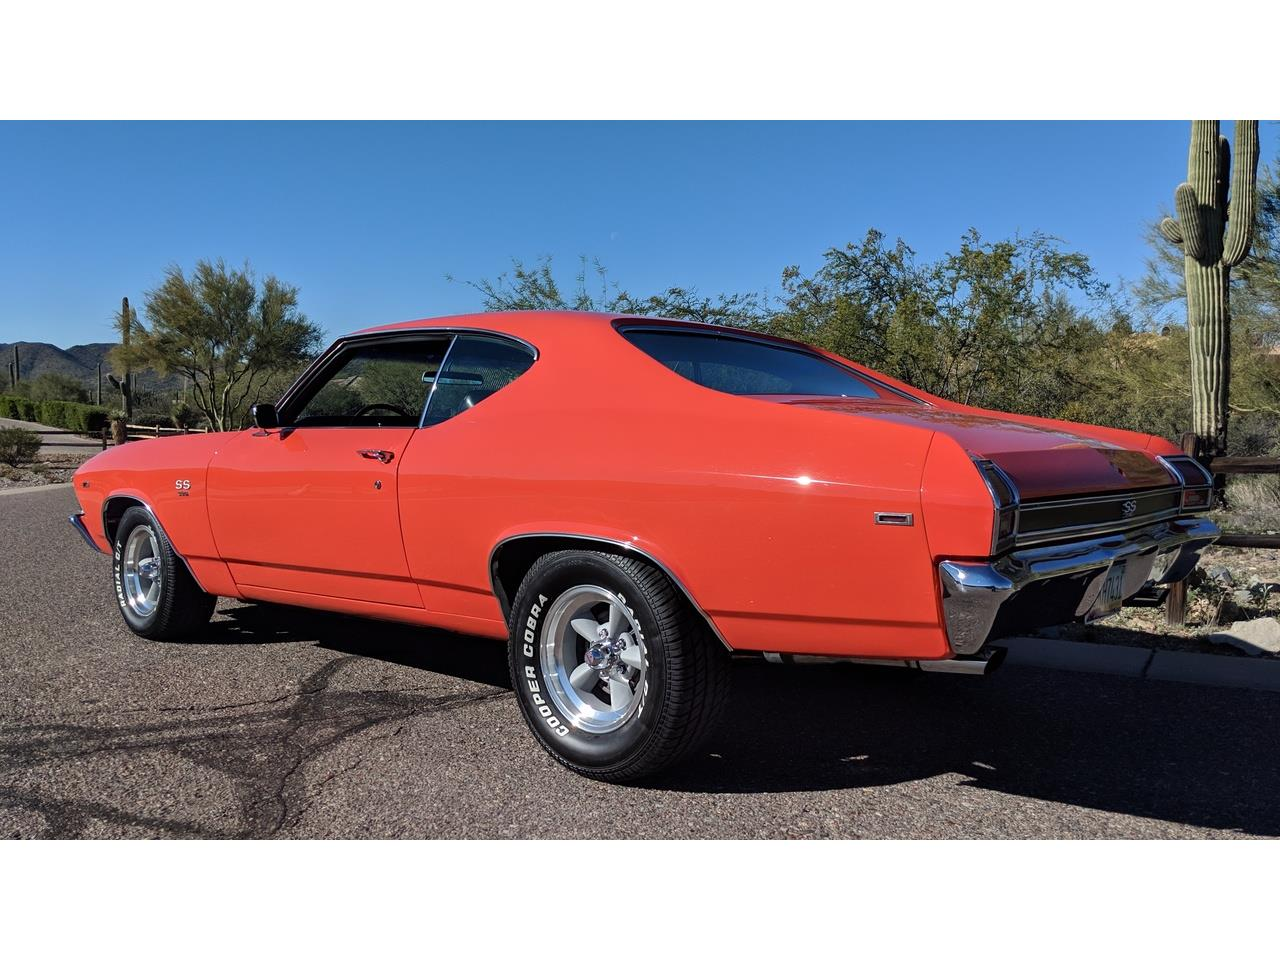 Large Picture of '69 Chevrolet Chevelle SS located in Arizona - $54,000.00 Offered by a Private Seller - PEBN